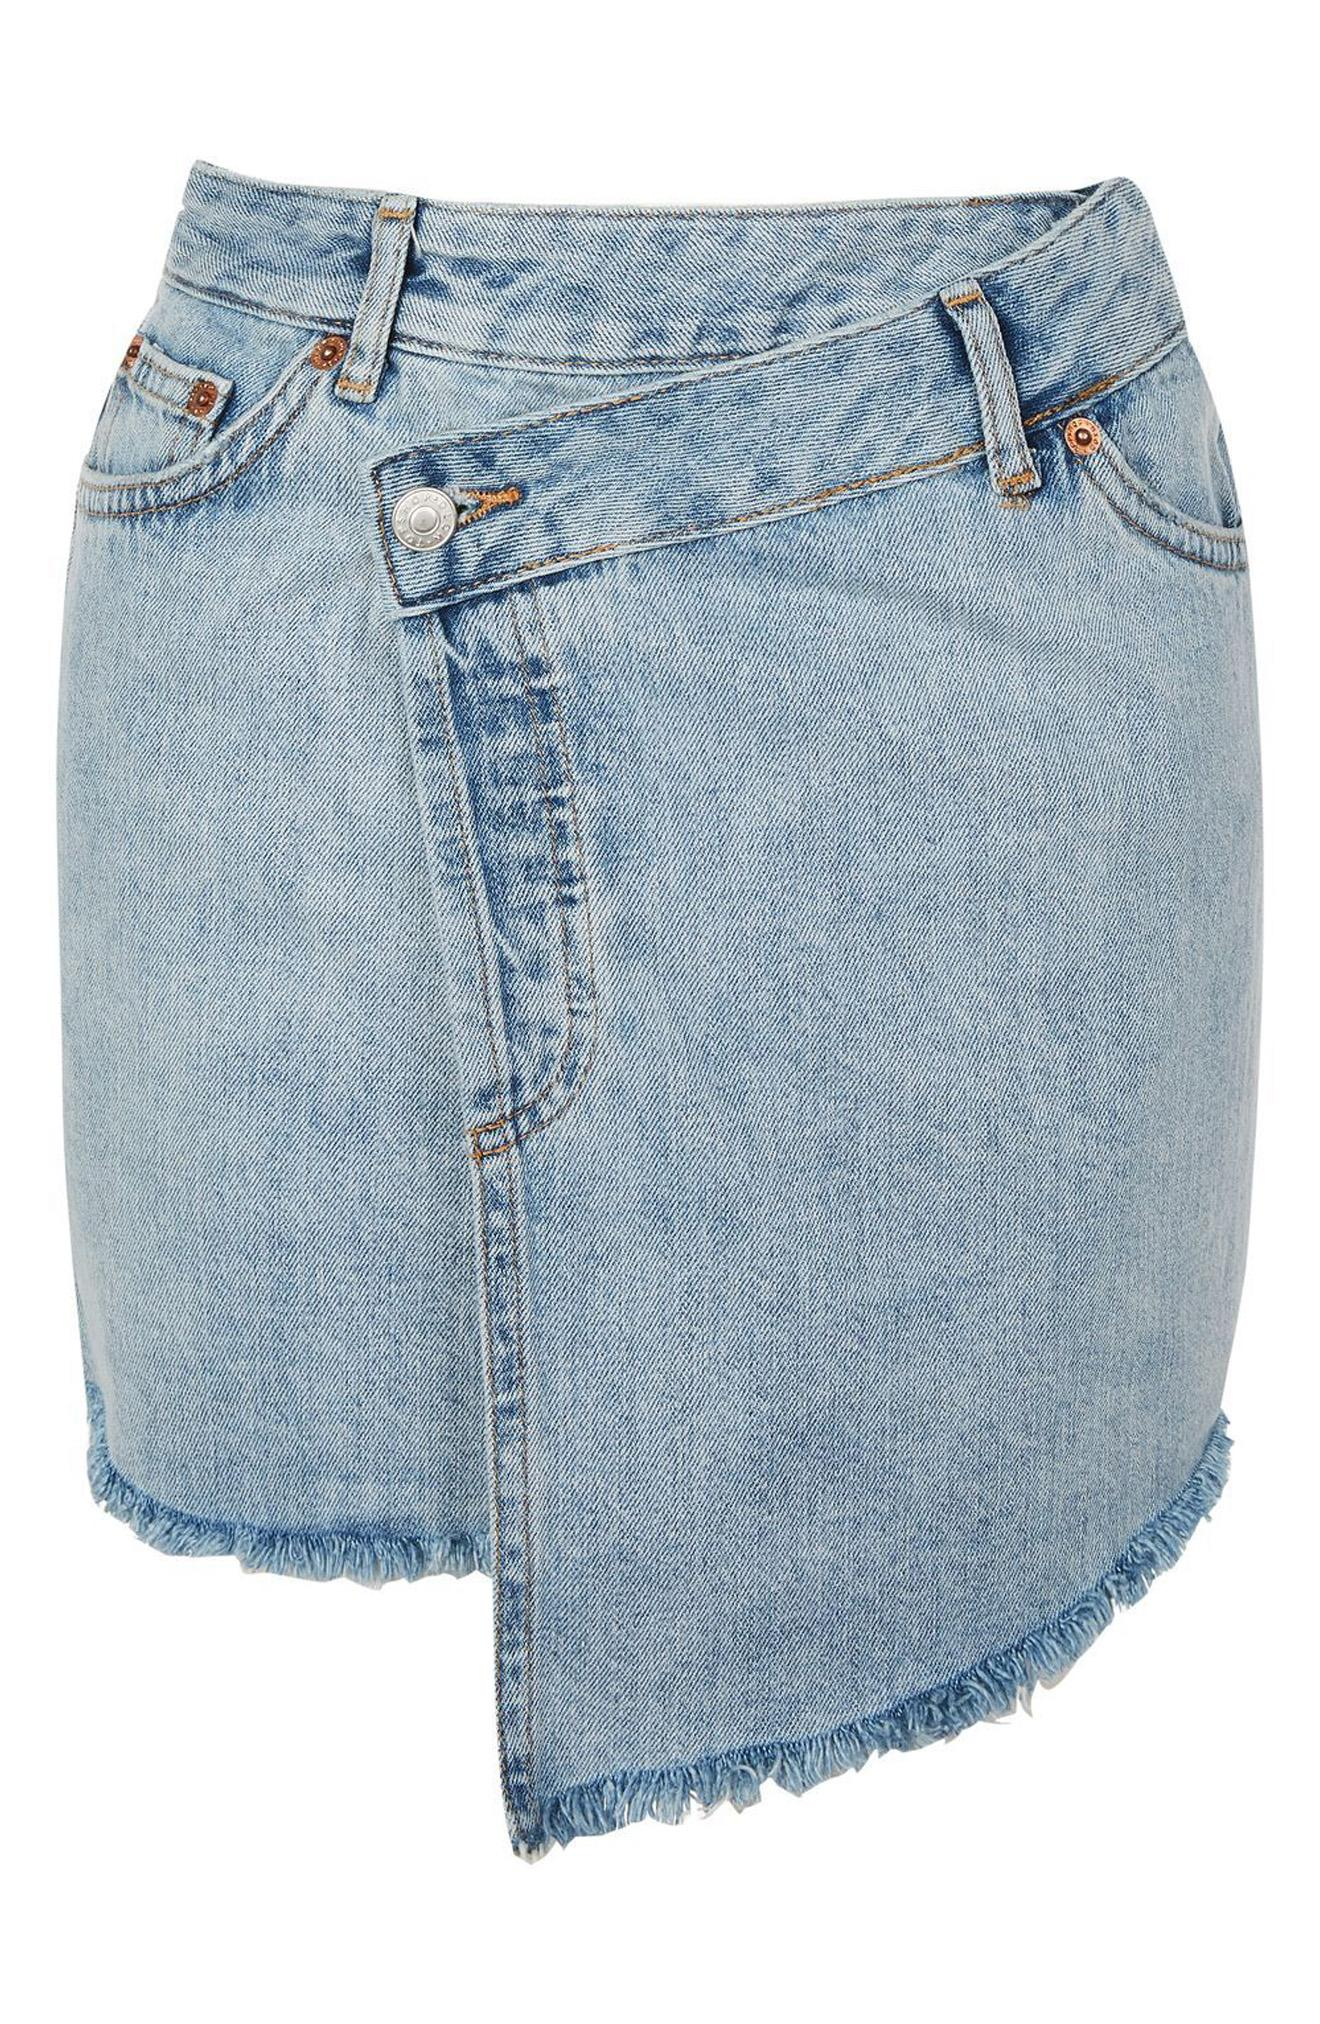 Topshop Deconstructed Wrap Denim Skirt $60 (Nordstrom)